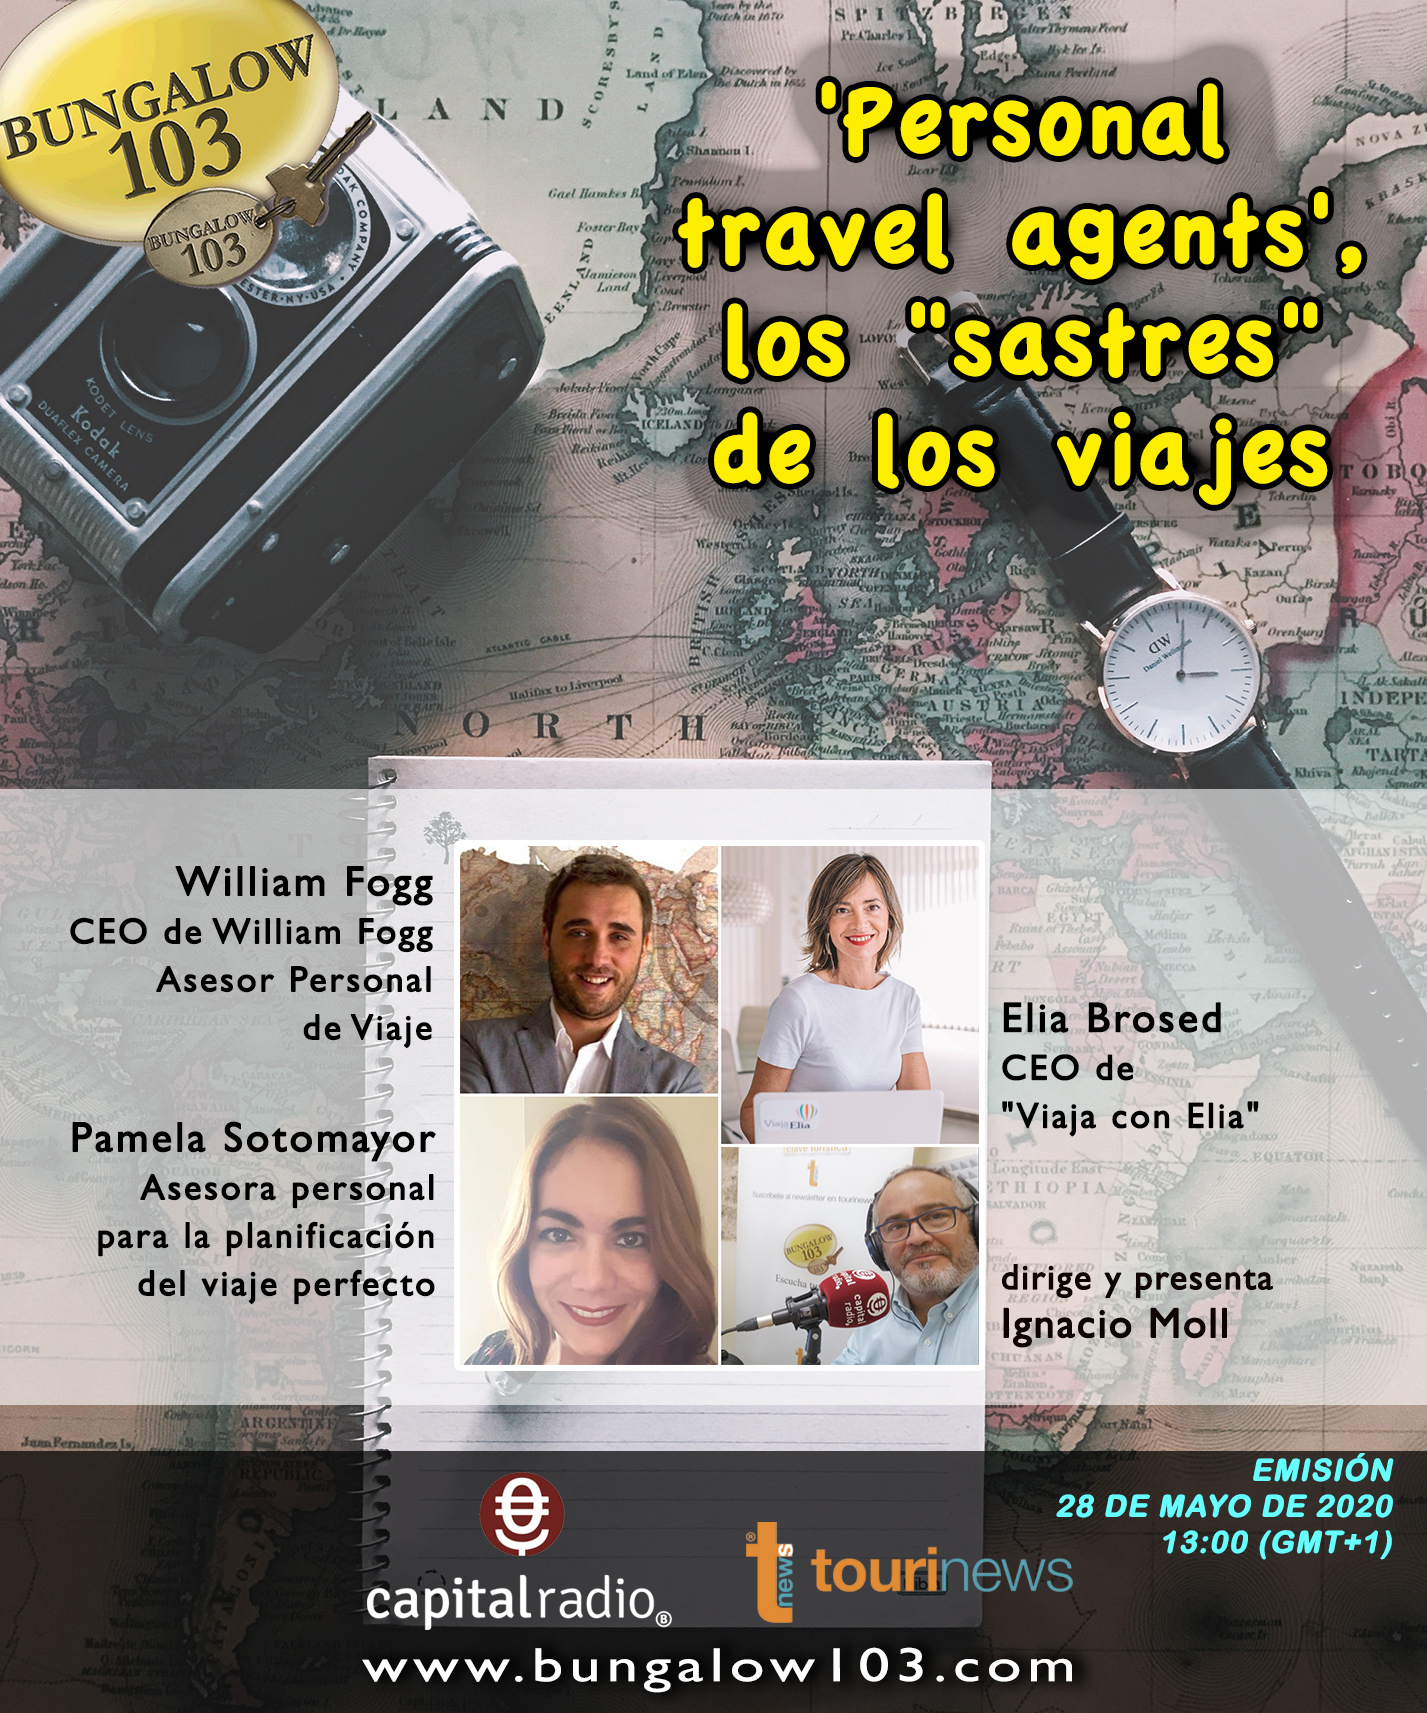 'PERSONAL TRAVEL AGENTS', LOS